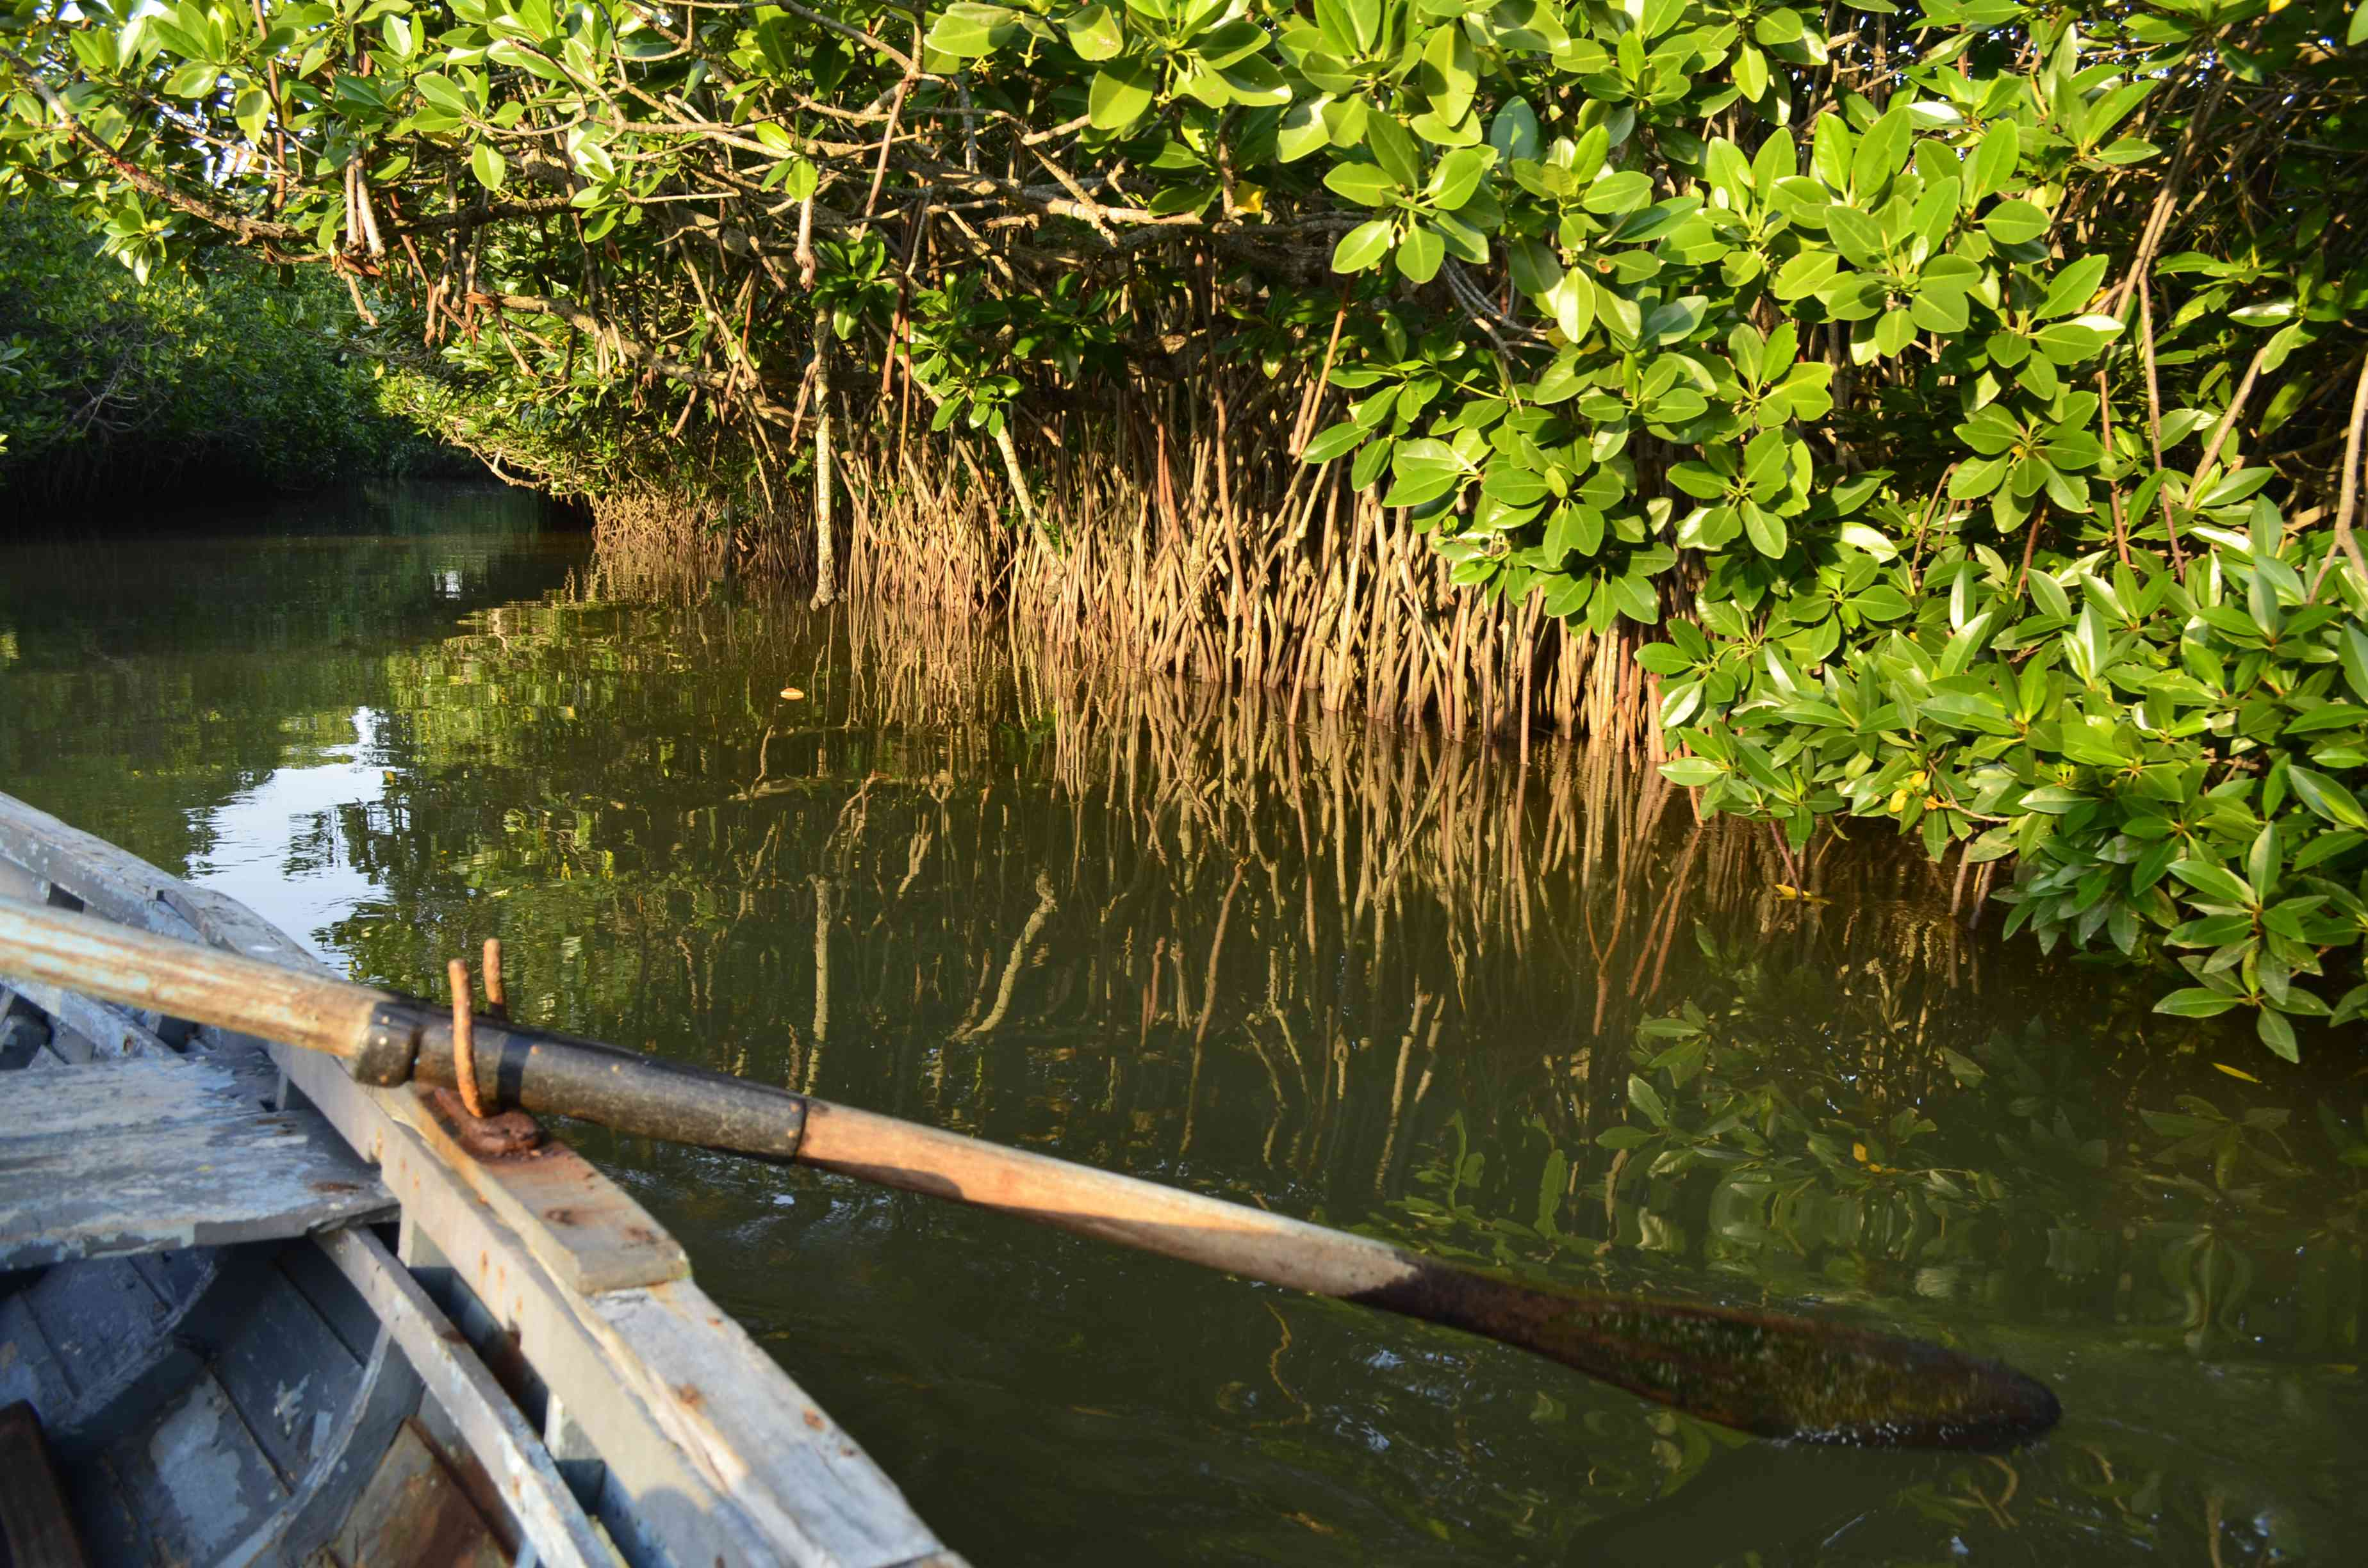 Exploring the Pichavaram mangrove forest by paddle boat.